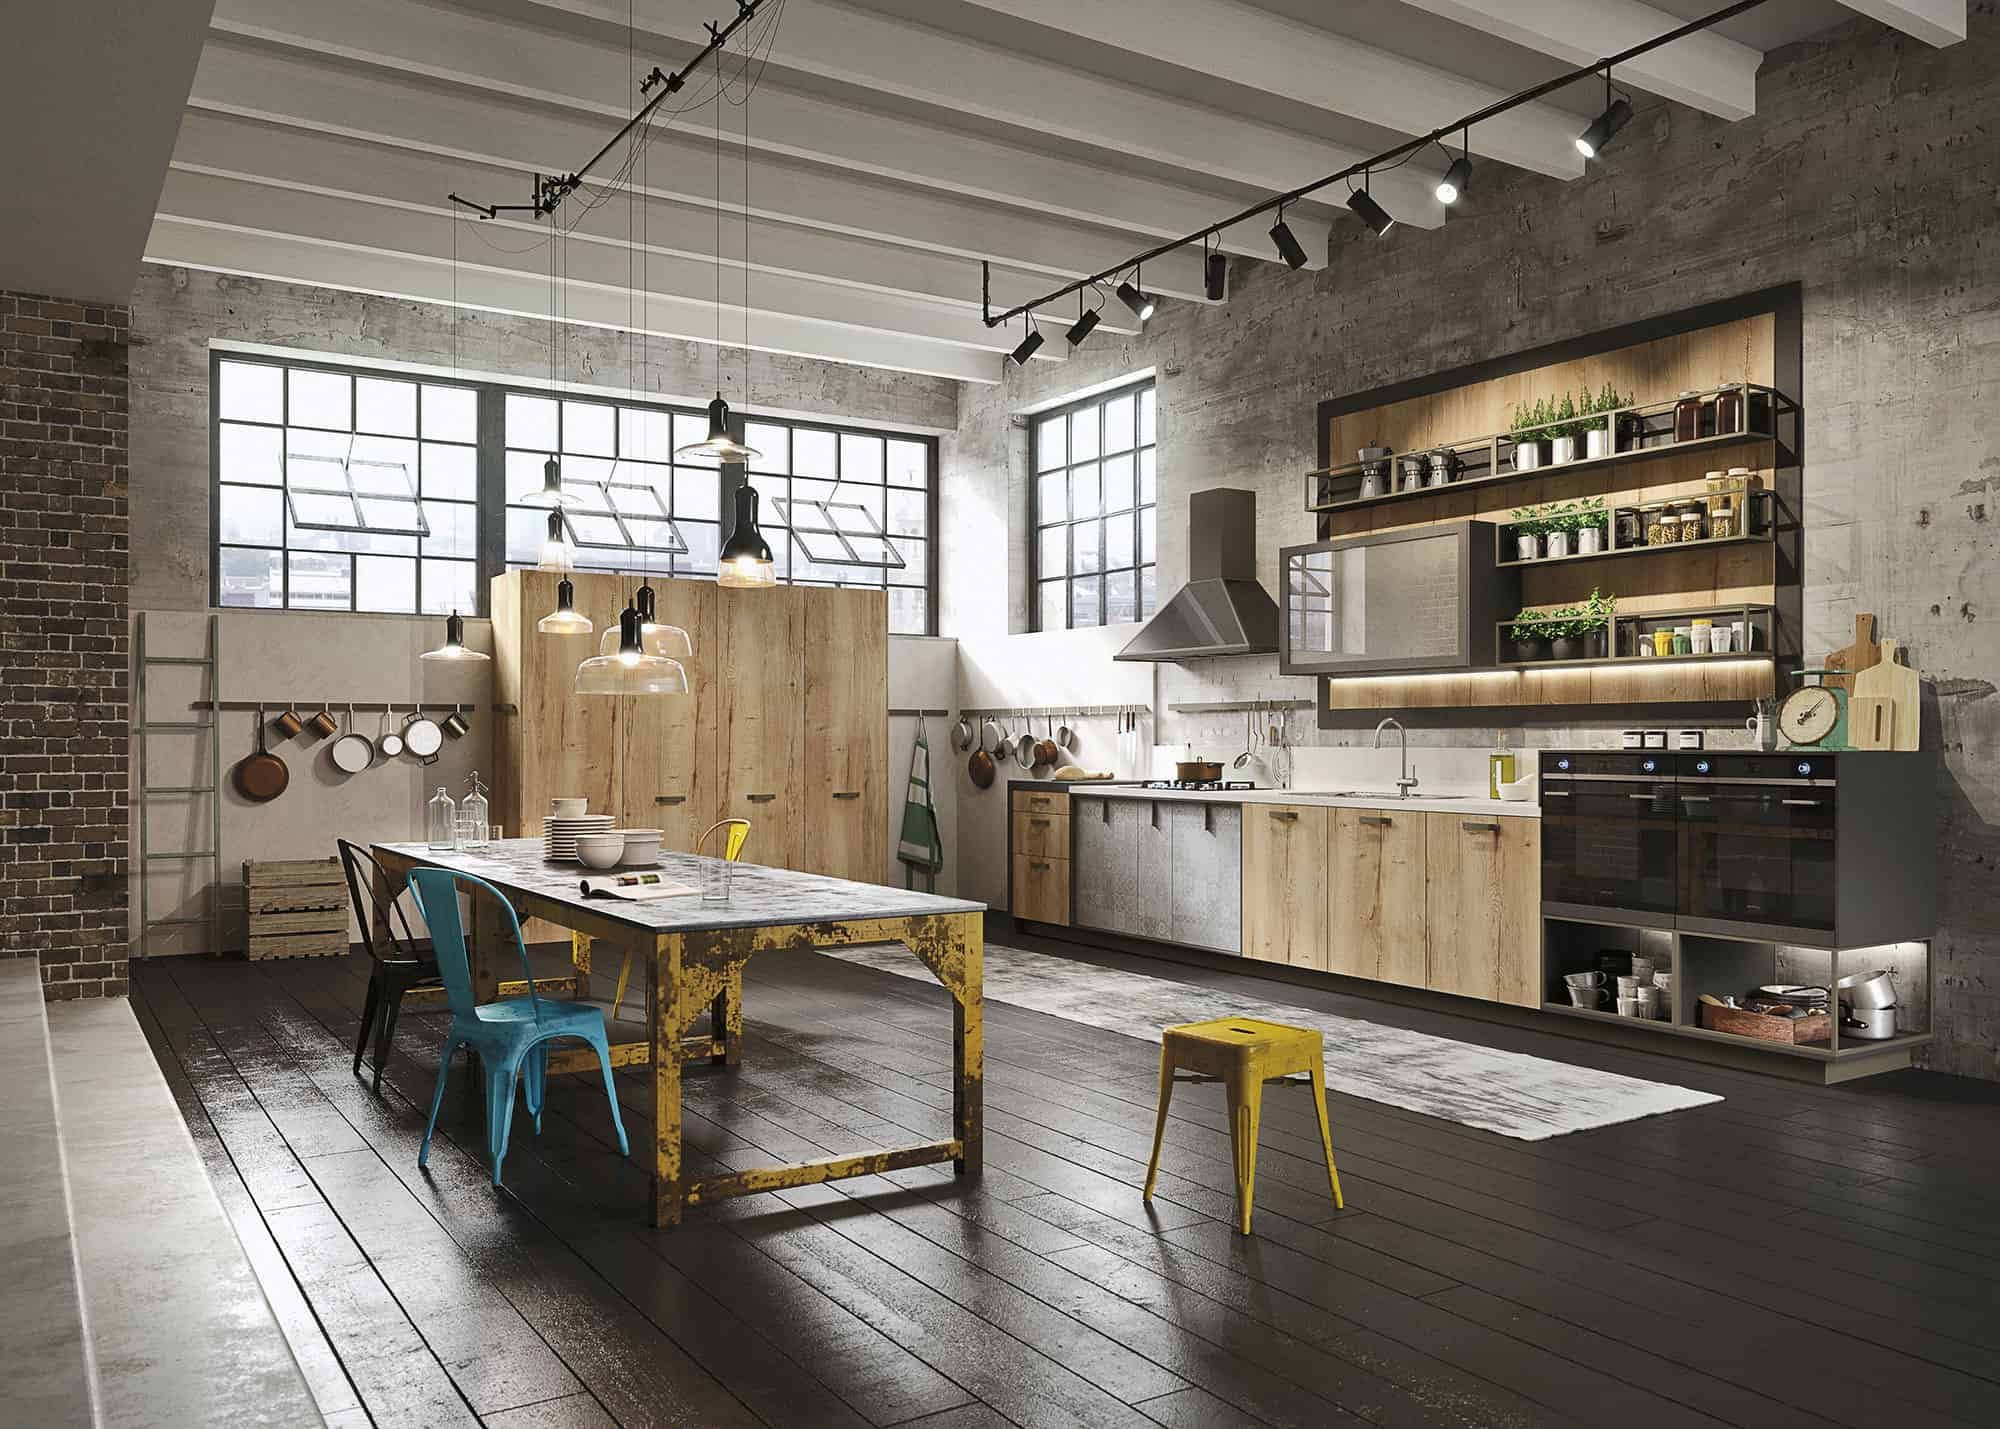 Loft Kitchen Ideas Classy Kitchen Design For Lofts 3 Urban Ideas From Snaidero